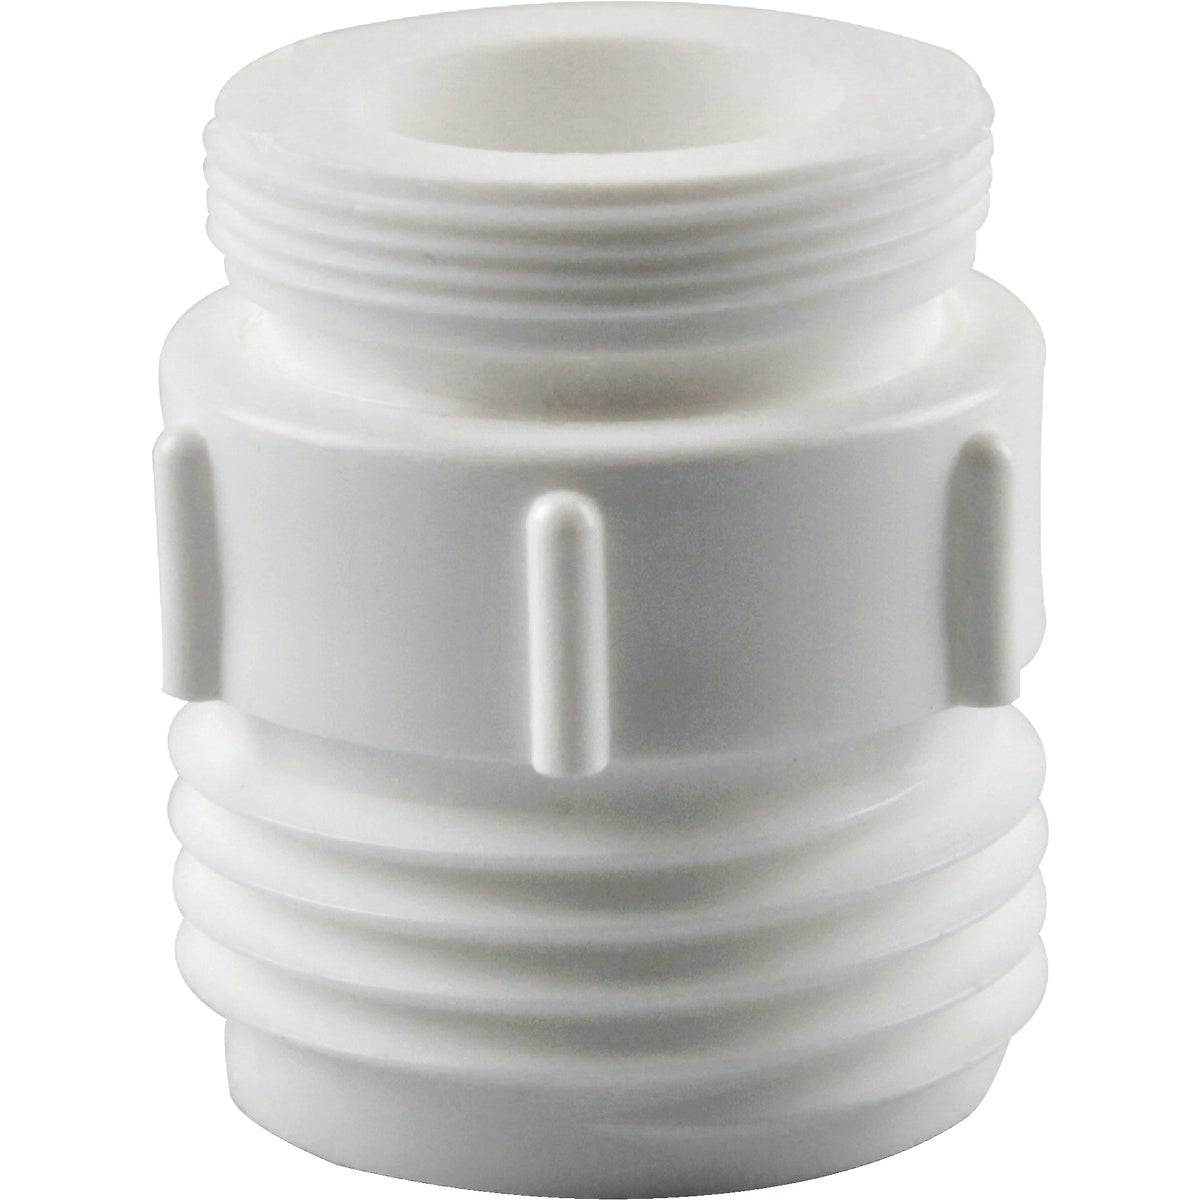 PLASTIC FAUCET ADAPTER